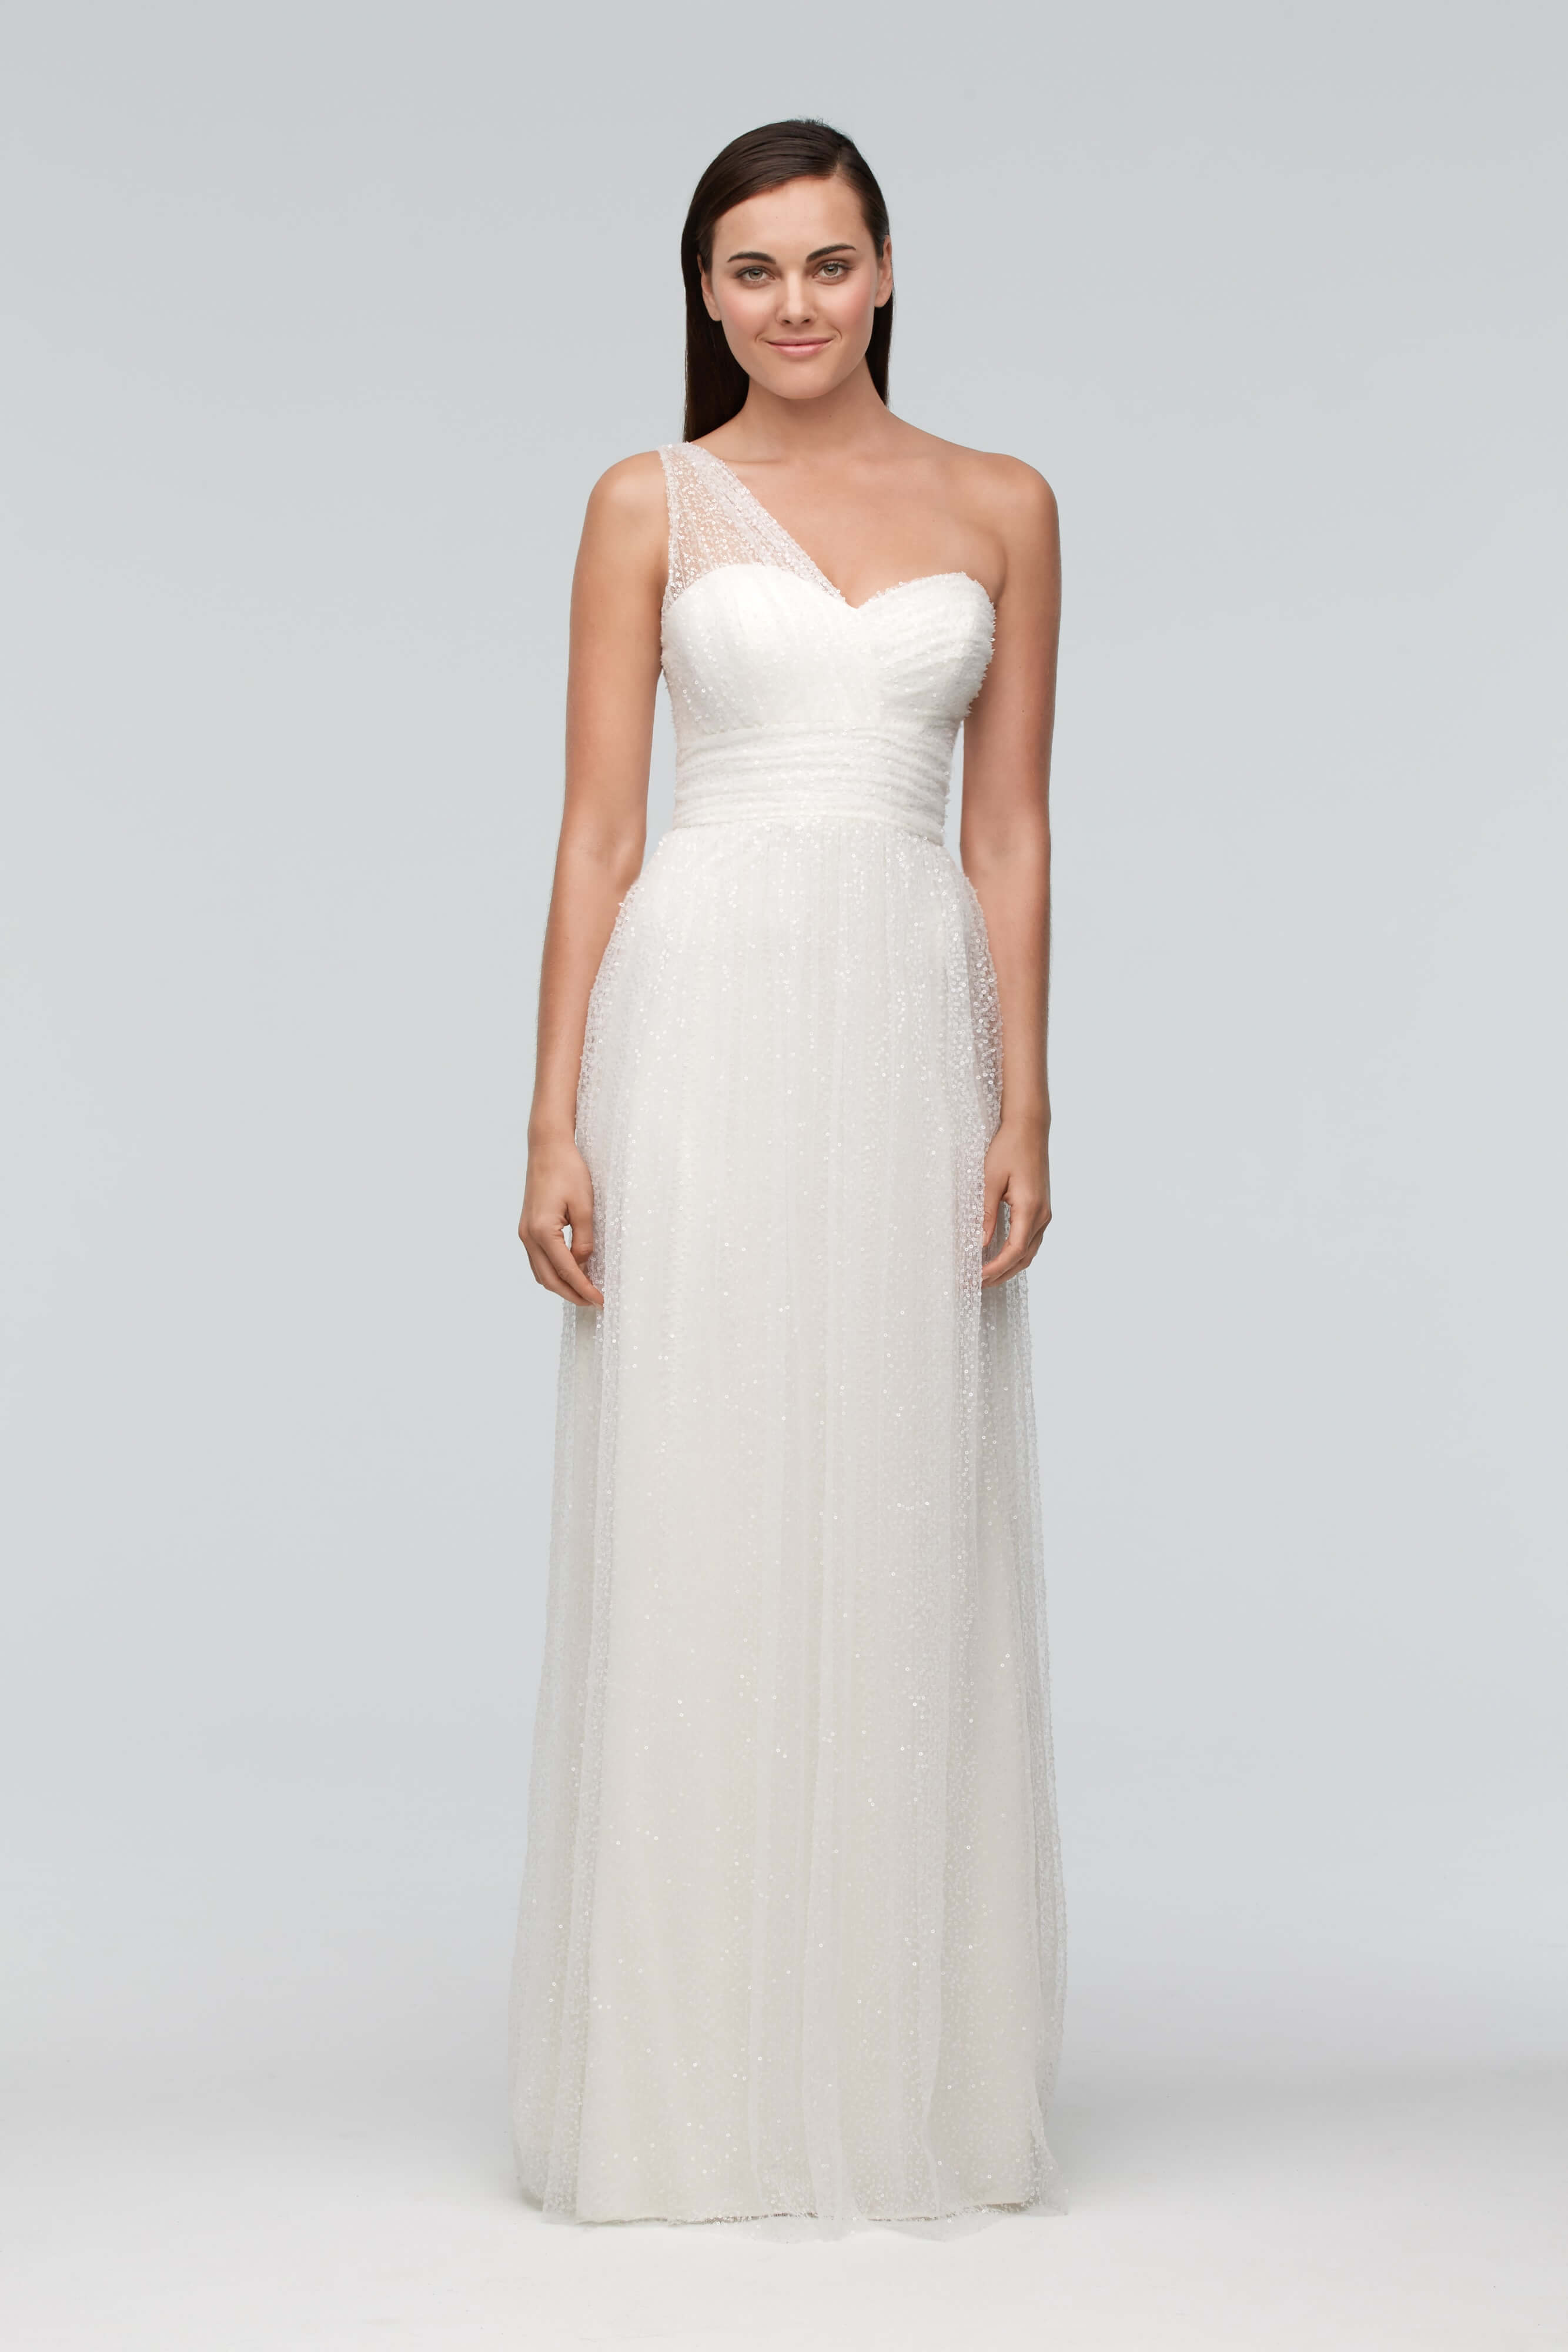 e646ff17c772 Wattersmaids | Iconic Bride | Prices Start From £200